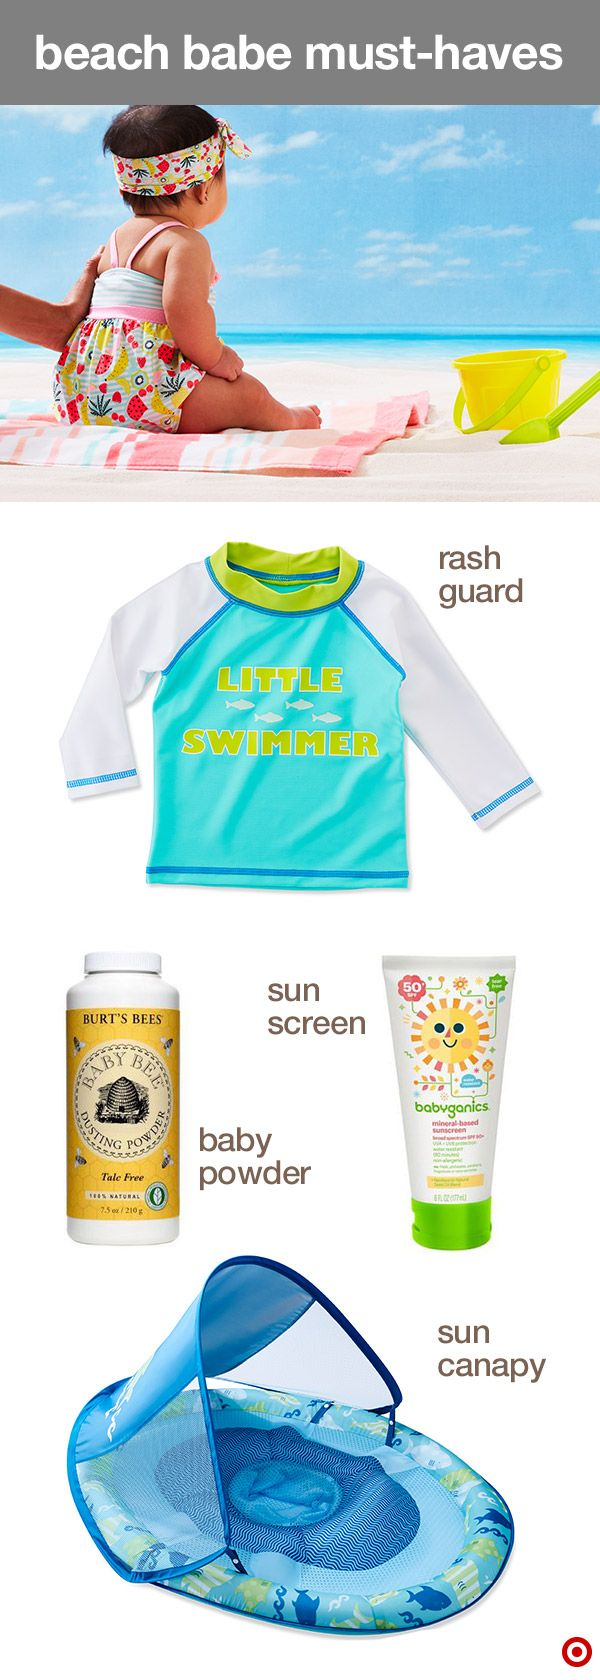 Heading to the beach over spring break? Make sure they're protected with all the fun-in-the-sun must-haves. Babyganics sunscreen protects their delicate skin and is available in a stick, spray or lotion. A hat, cool sunglasses, swimsuit and rash guard from Baby Cat & Jack allows for extra-fun (and coverage) at the beach. And introduce them to the water while keeping them shaded with the SwimWays float sun canopy. TIP: Baby powder helps remove sticky sand from skin. Plus, it smells great…